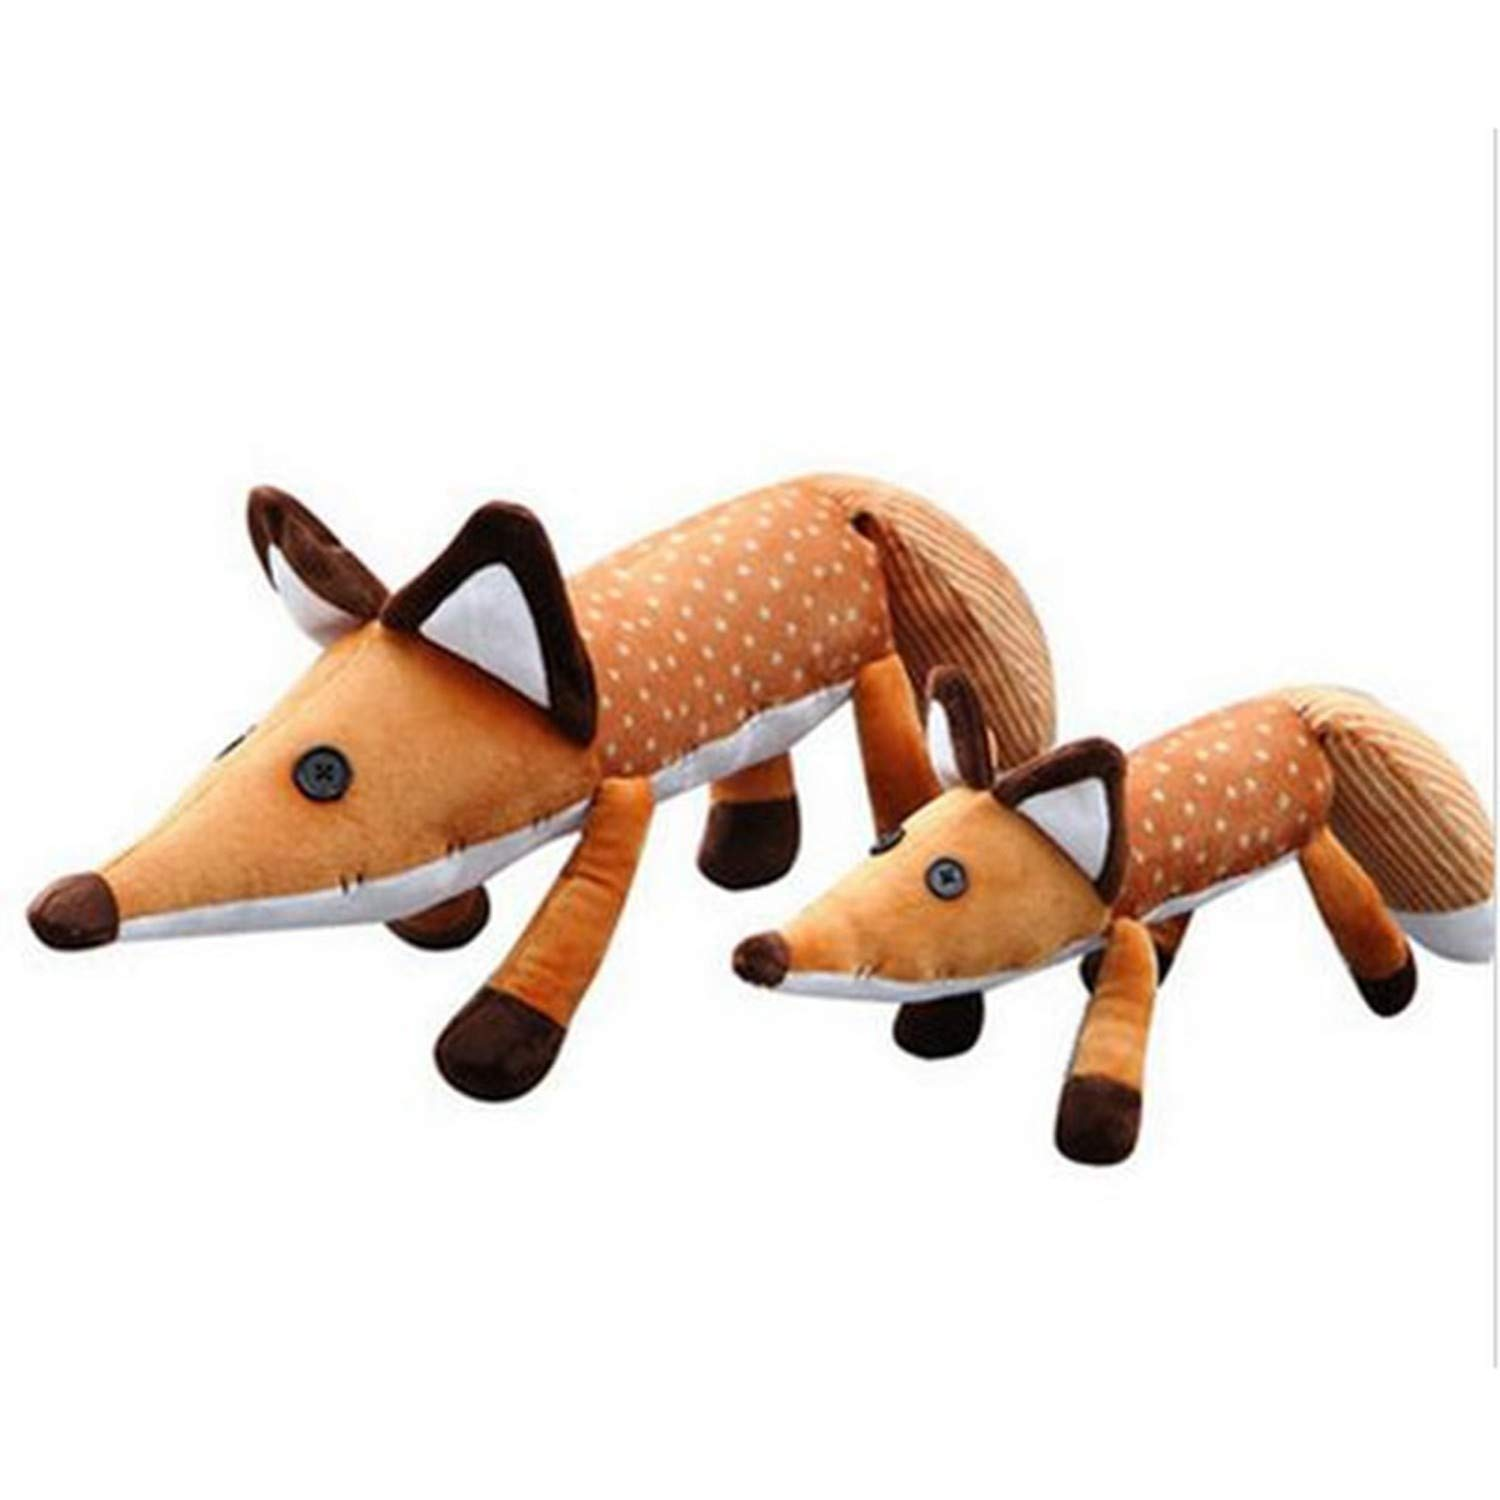 Amazon.com: JEWH [1pcs] Movie Le Petit Prince Little The Prince and The Fox Stuffed Animals Plush Toys Doll Stuffed Education Toys Kids Gift (60): Toys & ...